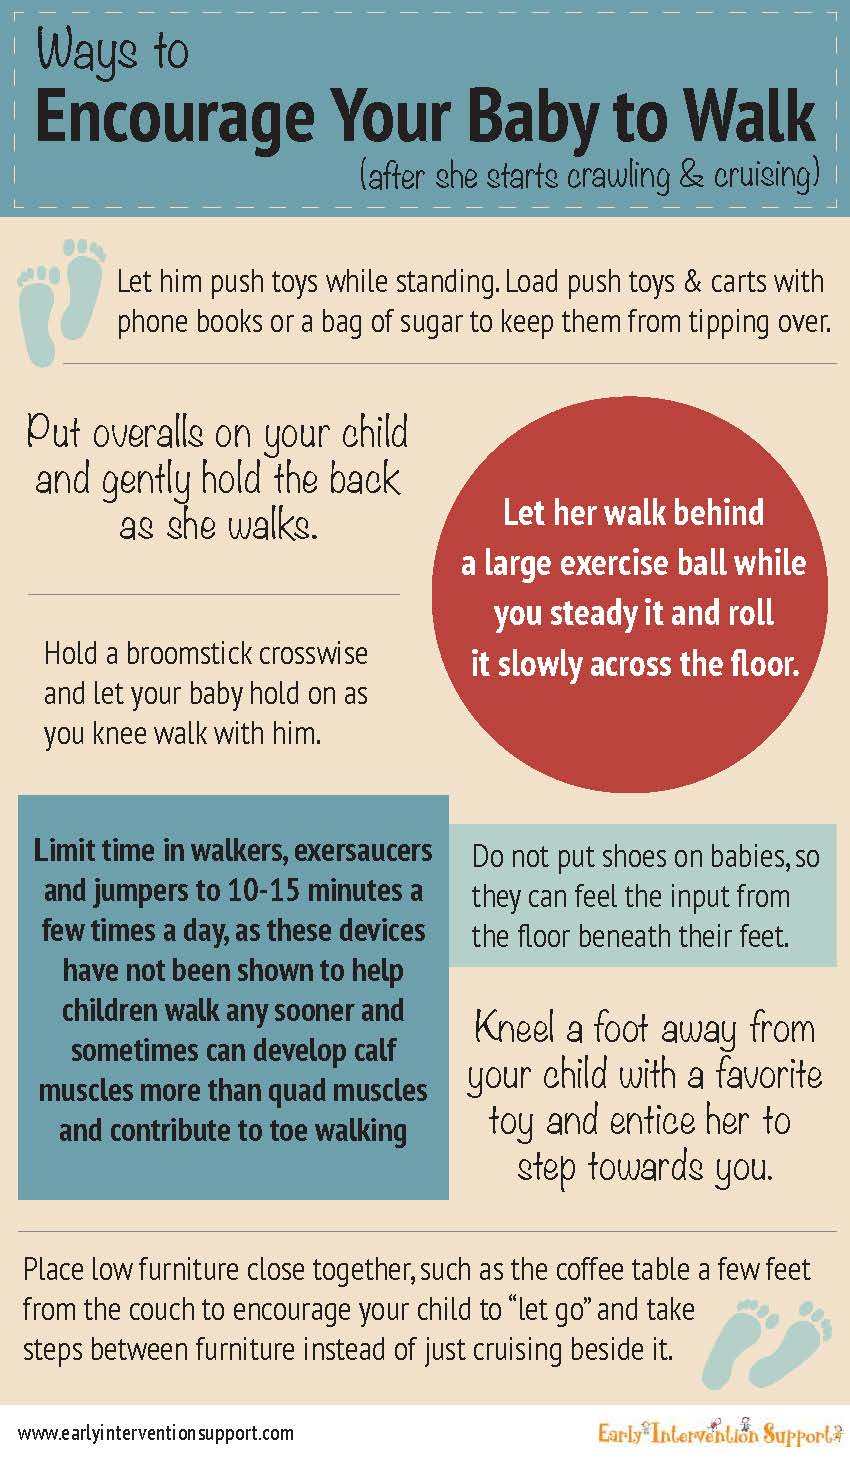 encourage baby to walk info graphic